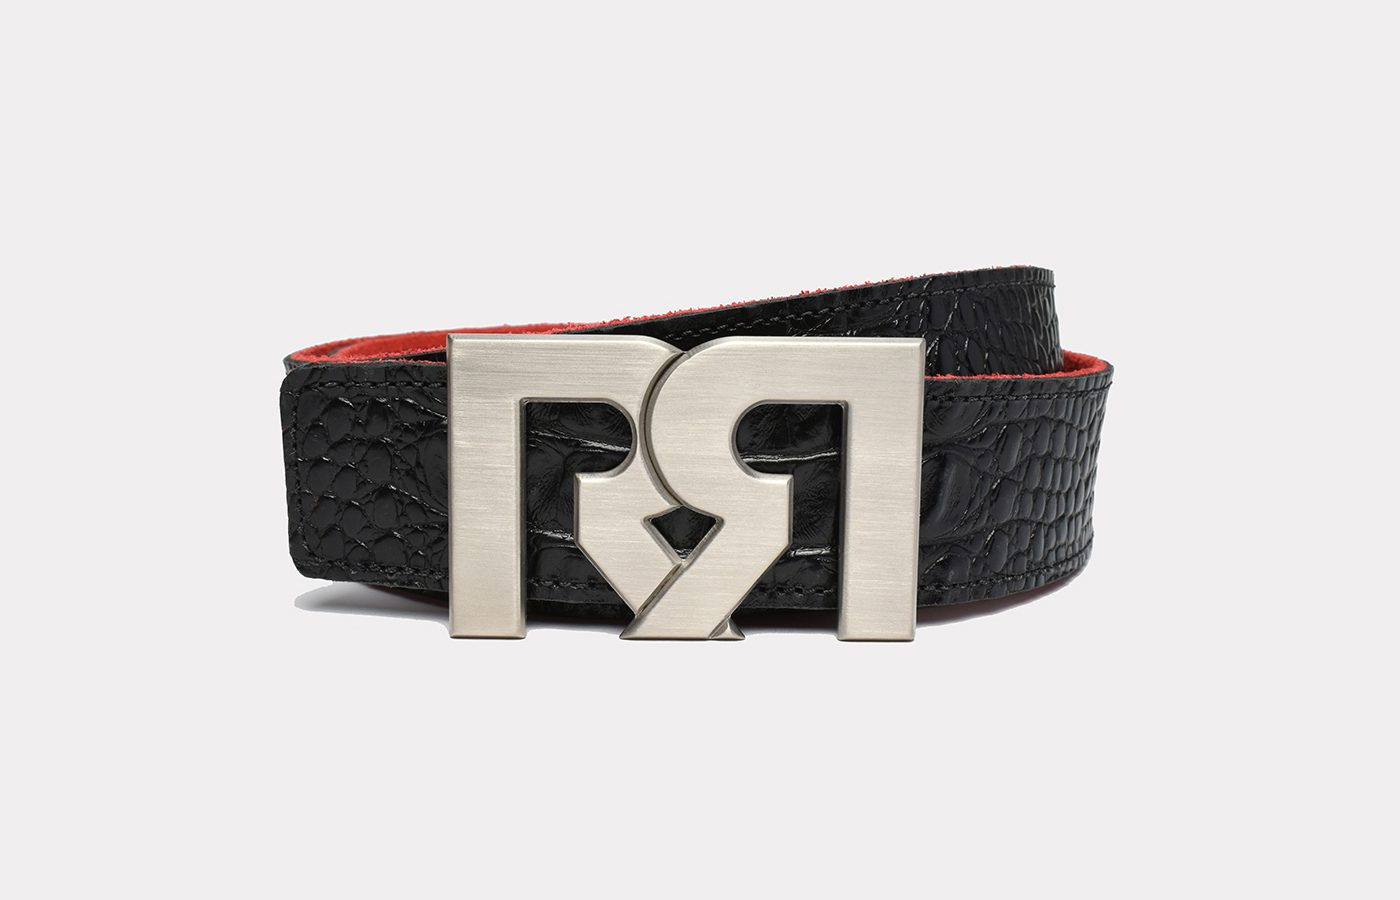 RR Designer belts Brushed Silver plated with Croc Embossed Leather strap